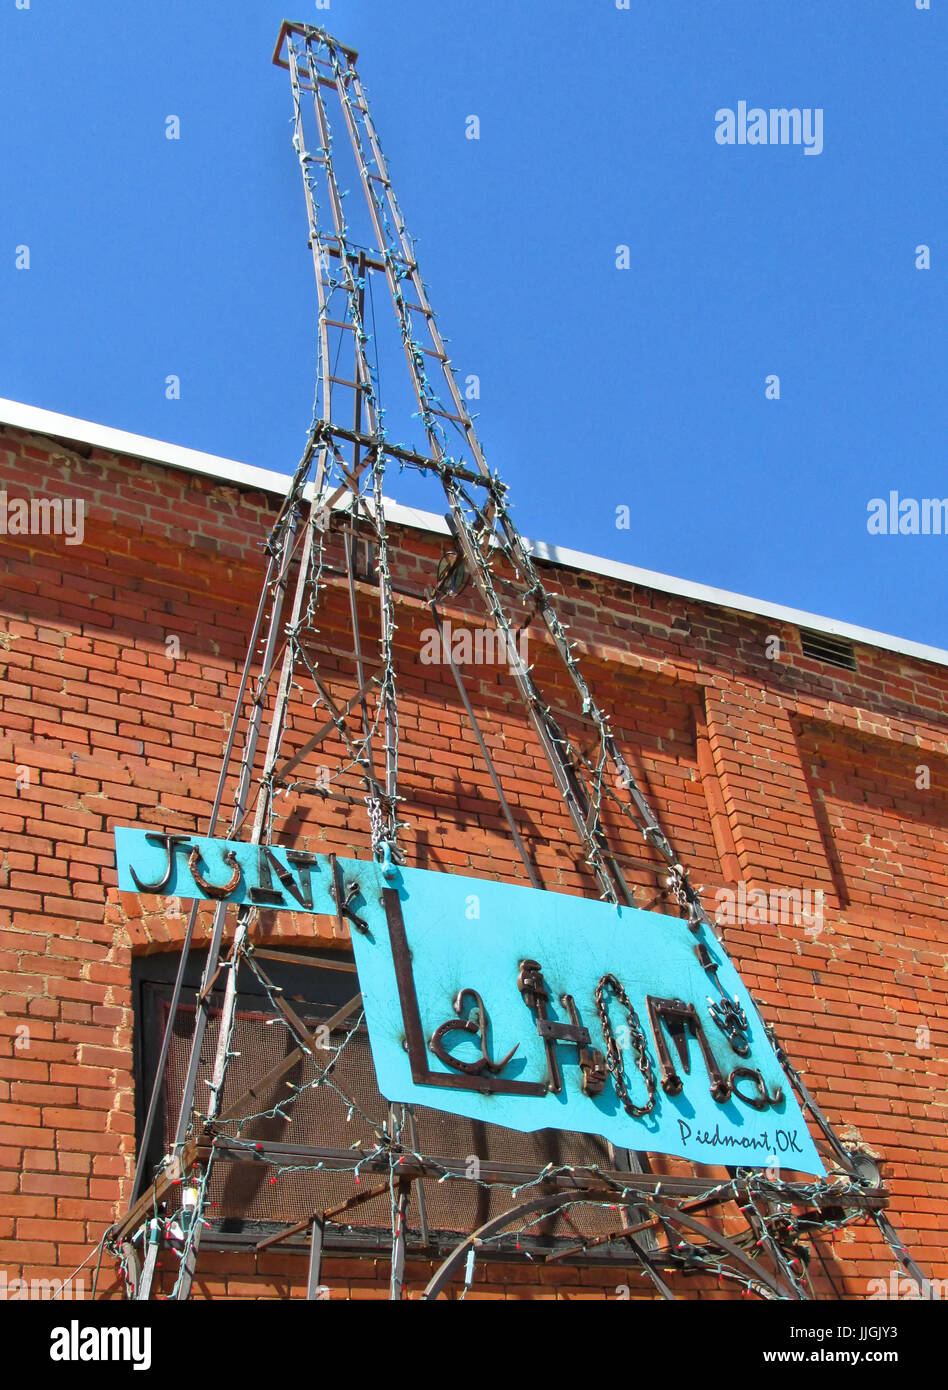 A metal Eiffel Tower look-alike stands with Junklahoma sign at an antique shop in Piedmont Oklahoma. - Stock Image